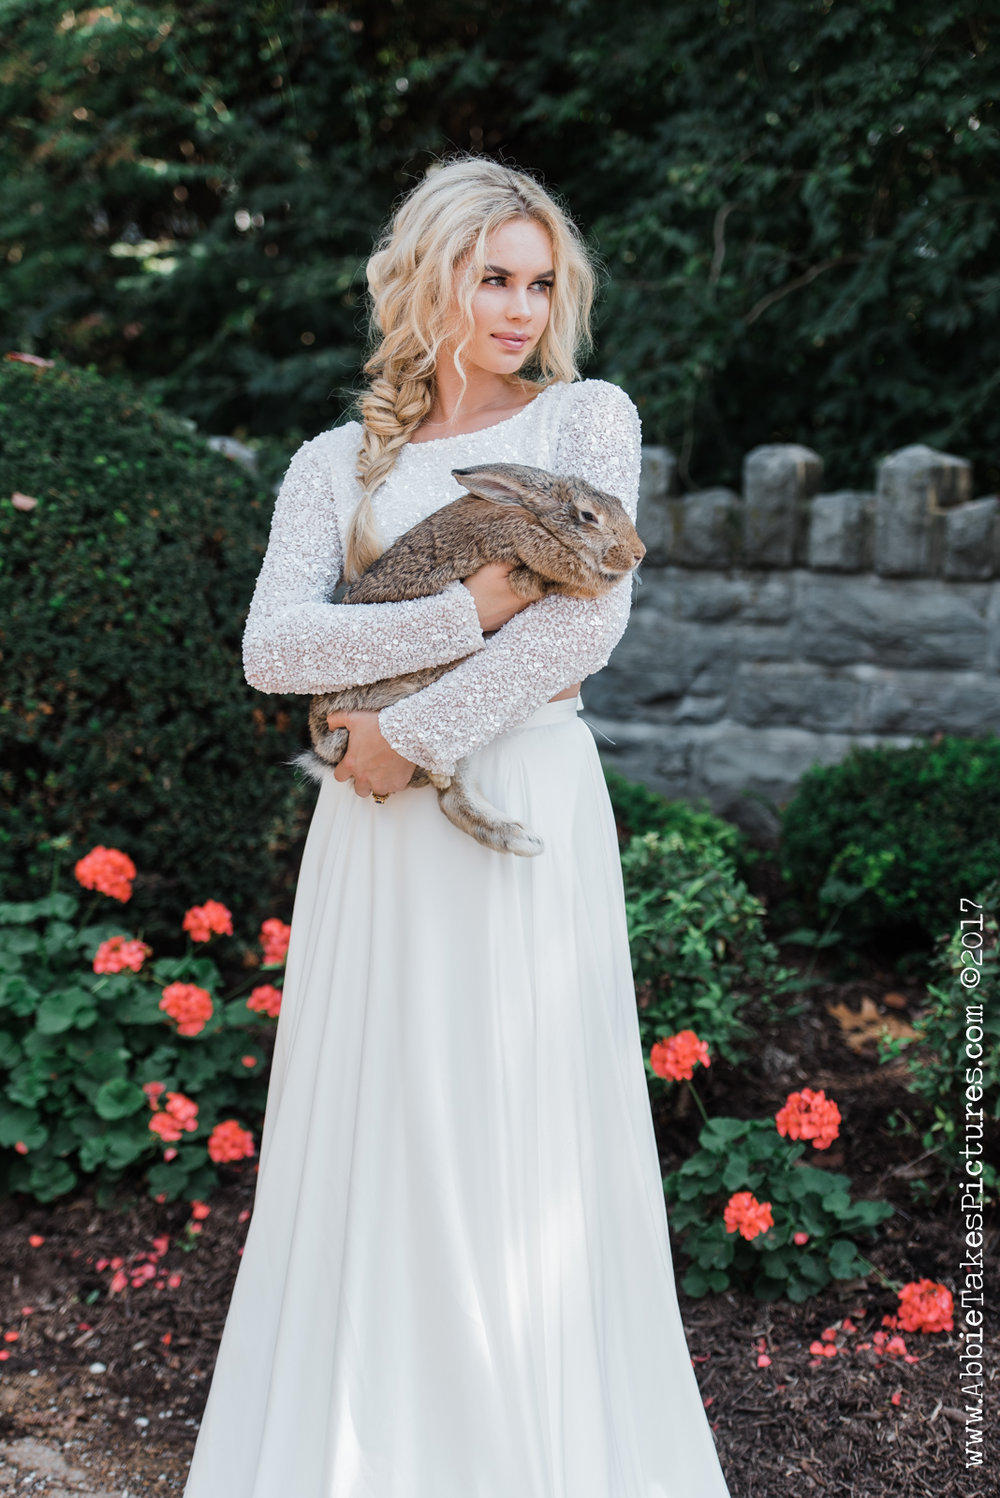 Saint Louis Bride Magazine : Abbie Takes Pictures  Theia Bridal Couture Separates